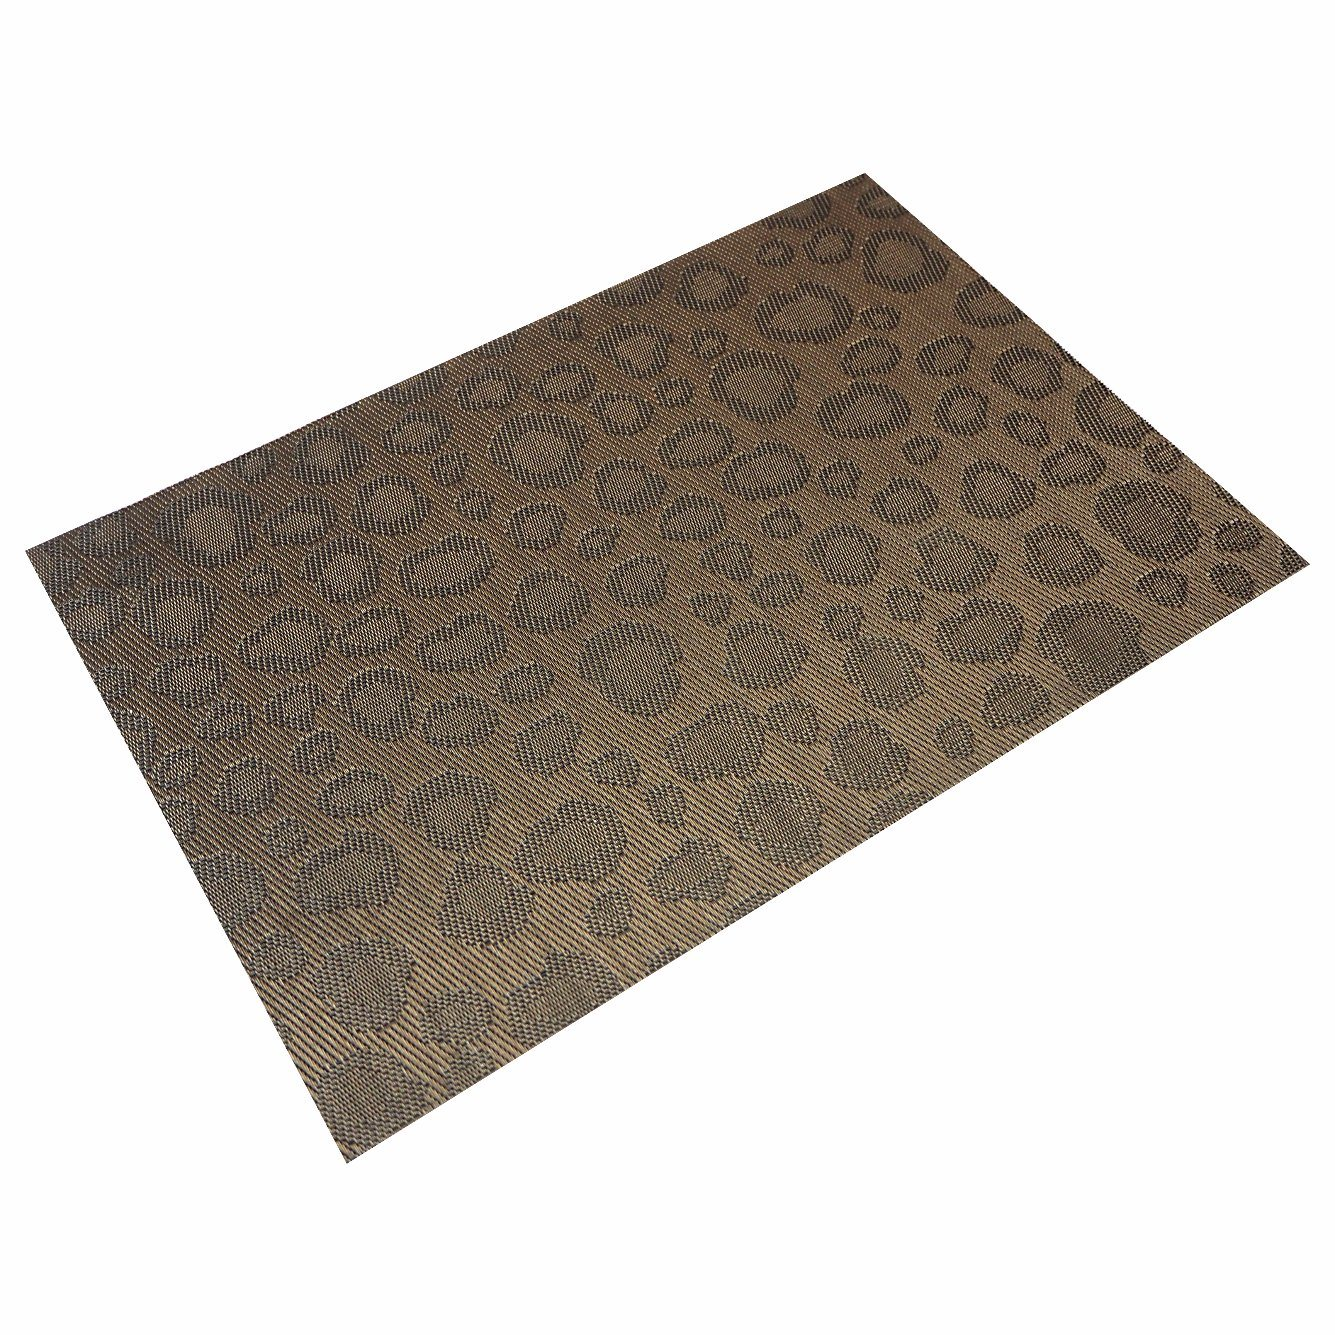 PVC Placemat for Tabletop & Flooring